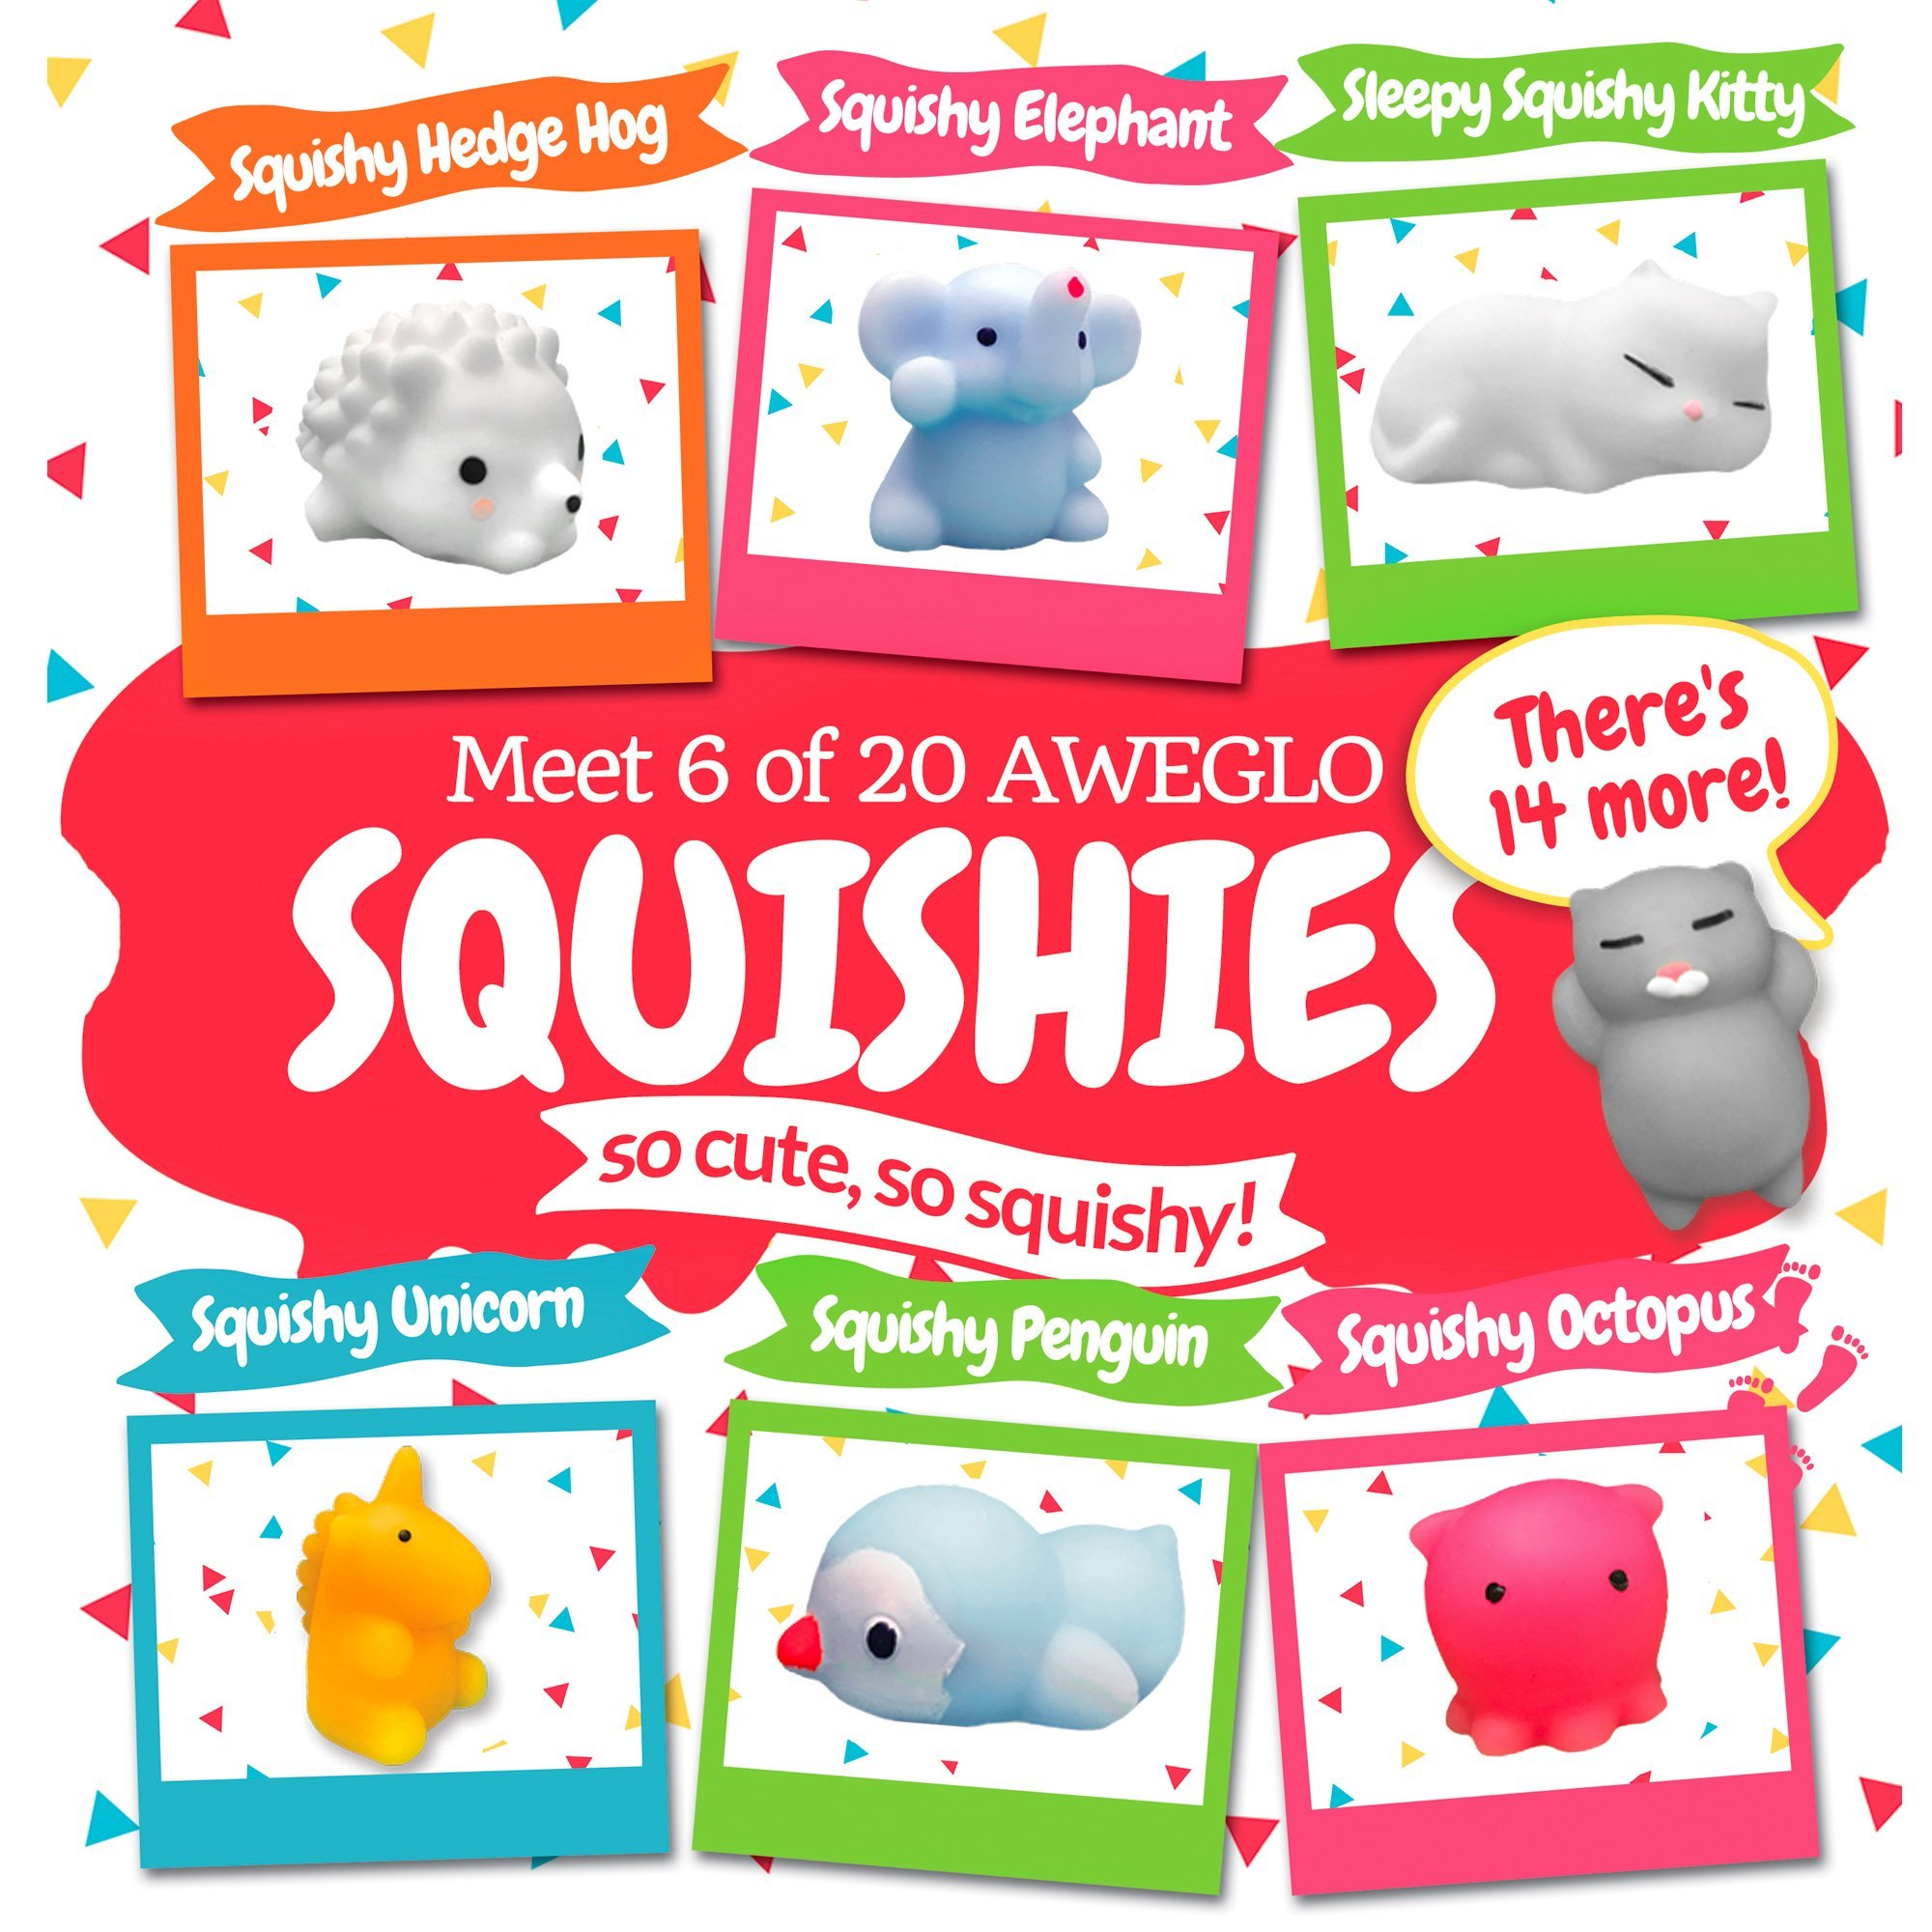 20 Mochi Squishy Toys, FREE CASE, 16 Animals 11 Colors, PARTY FAVORS AWEGLO Prime Silicone Small Mini Squishies Toy Boys Soft Kawaii Squishys Pack Kids Fidget Cat Stress Reliever No Slow Rise Sqishy's by AWEGLO Squishies (Image #1)